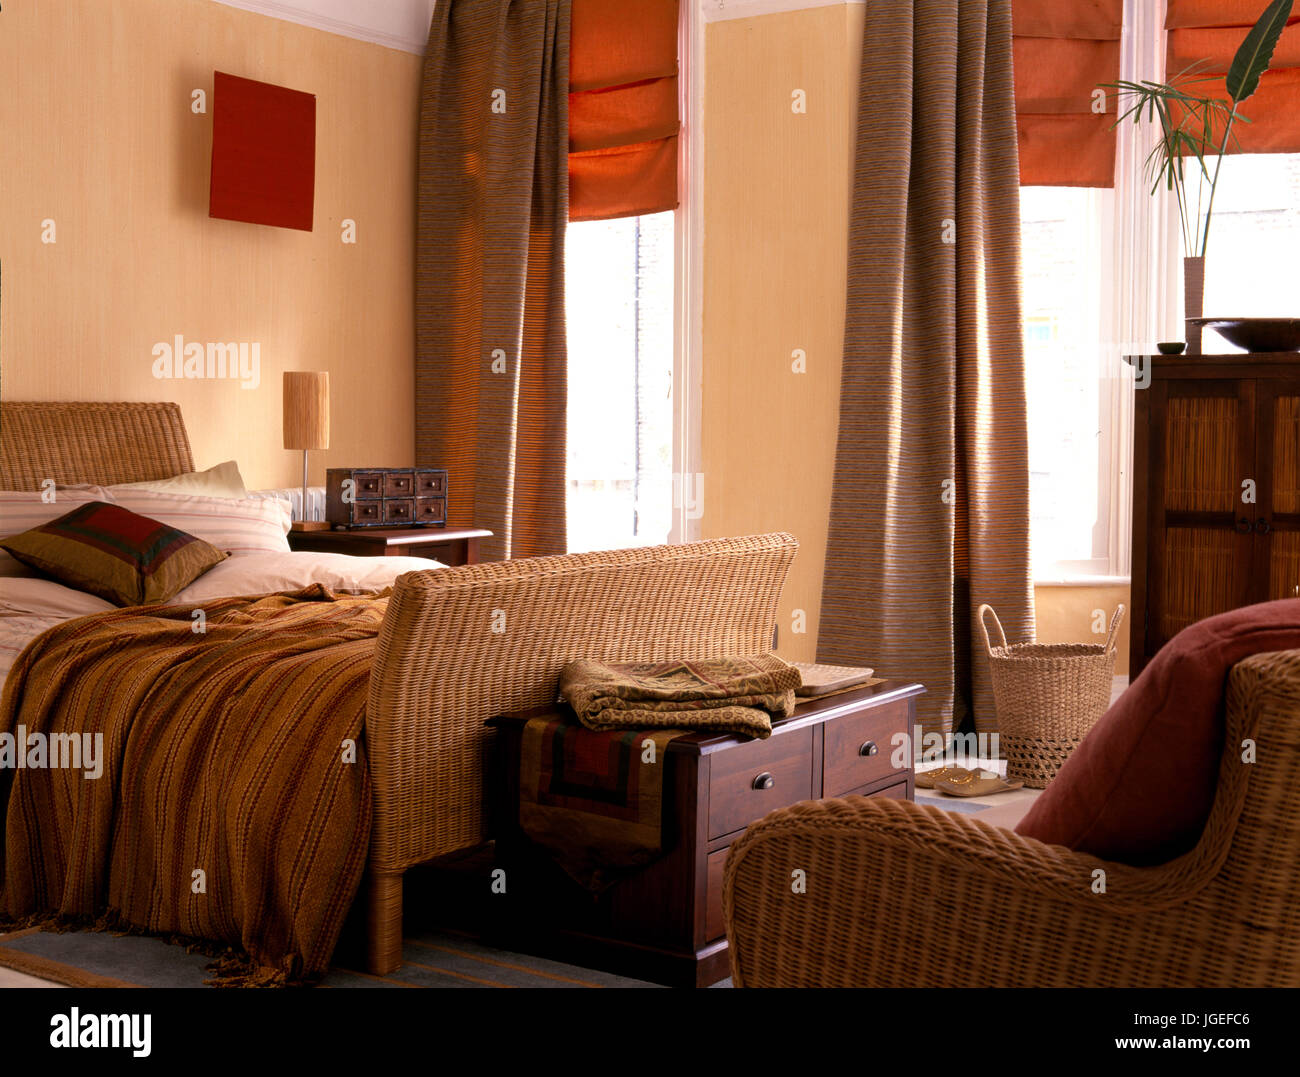 drapes and blinds interior design wicker bed in bedroom with orange blinds and brown drapes stock image drapes and blinds photos images alamy